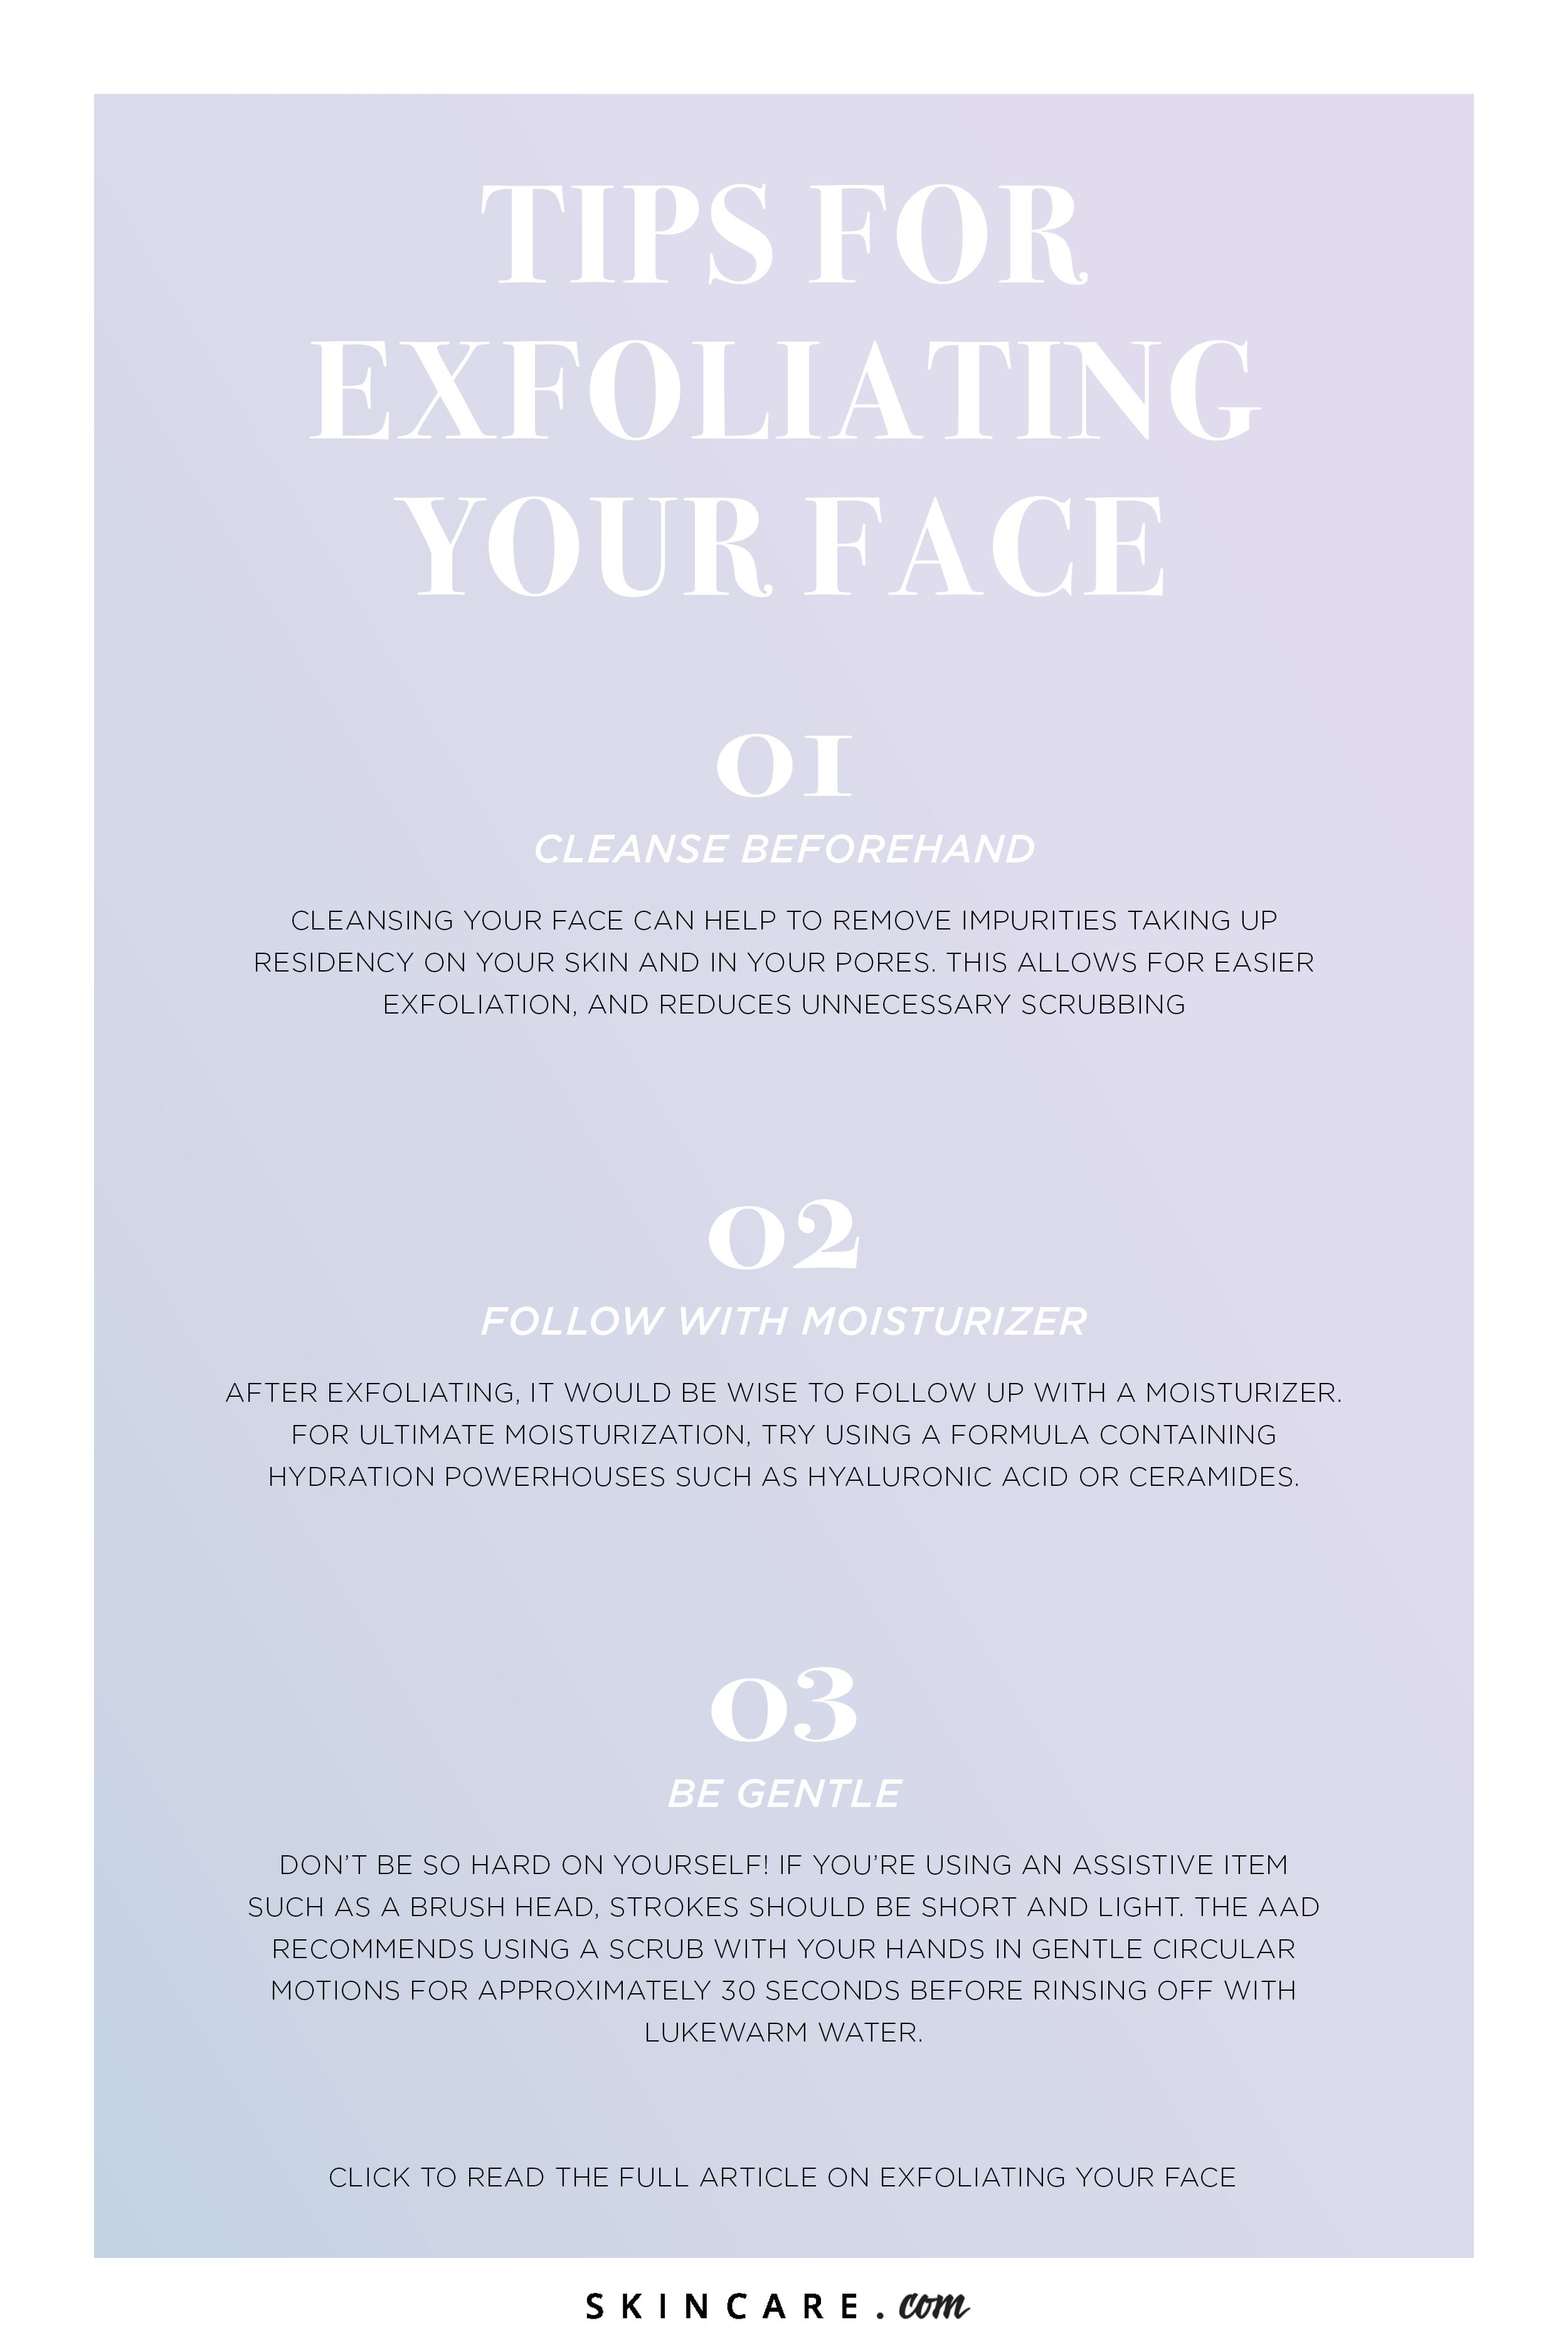 Ask The Expert How Often Should You Exfoliate Your Face Skincare Com By L Oreal Skin Care Tips Exfoliating Skin Care Routine